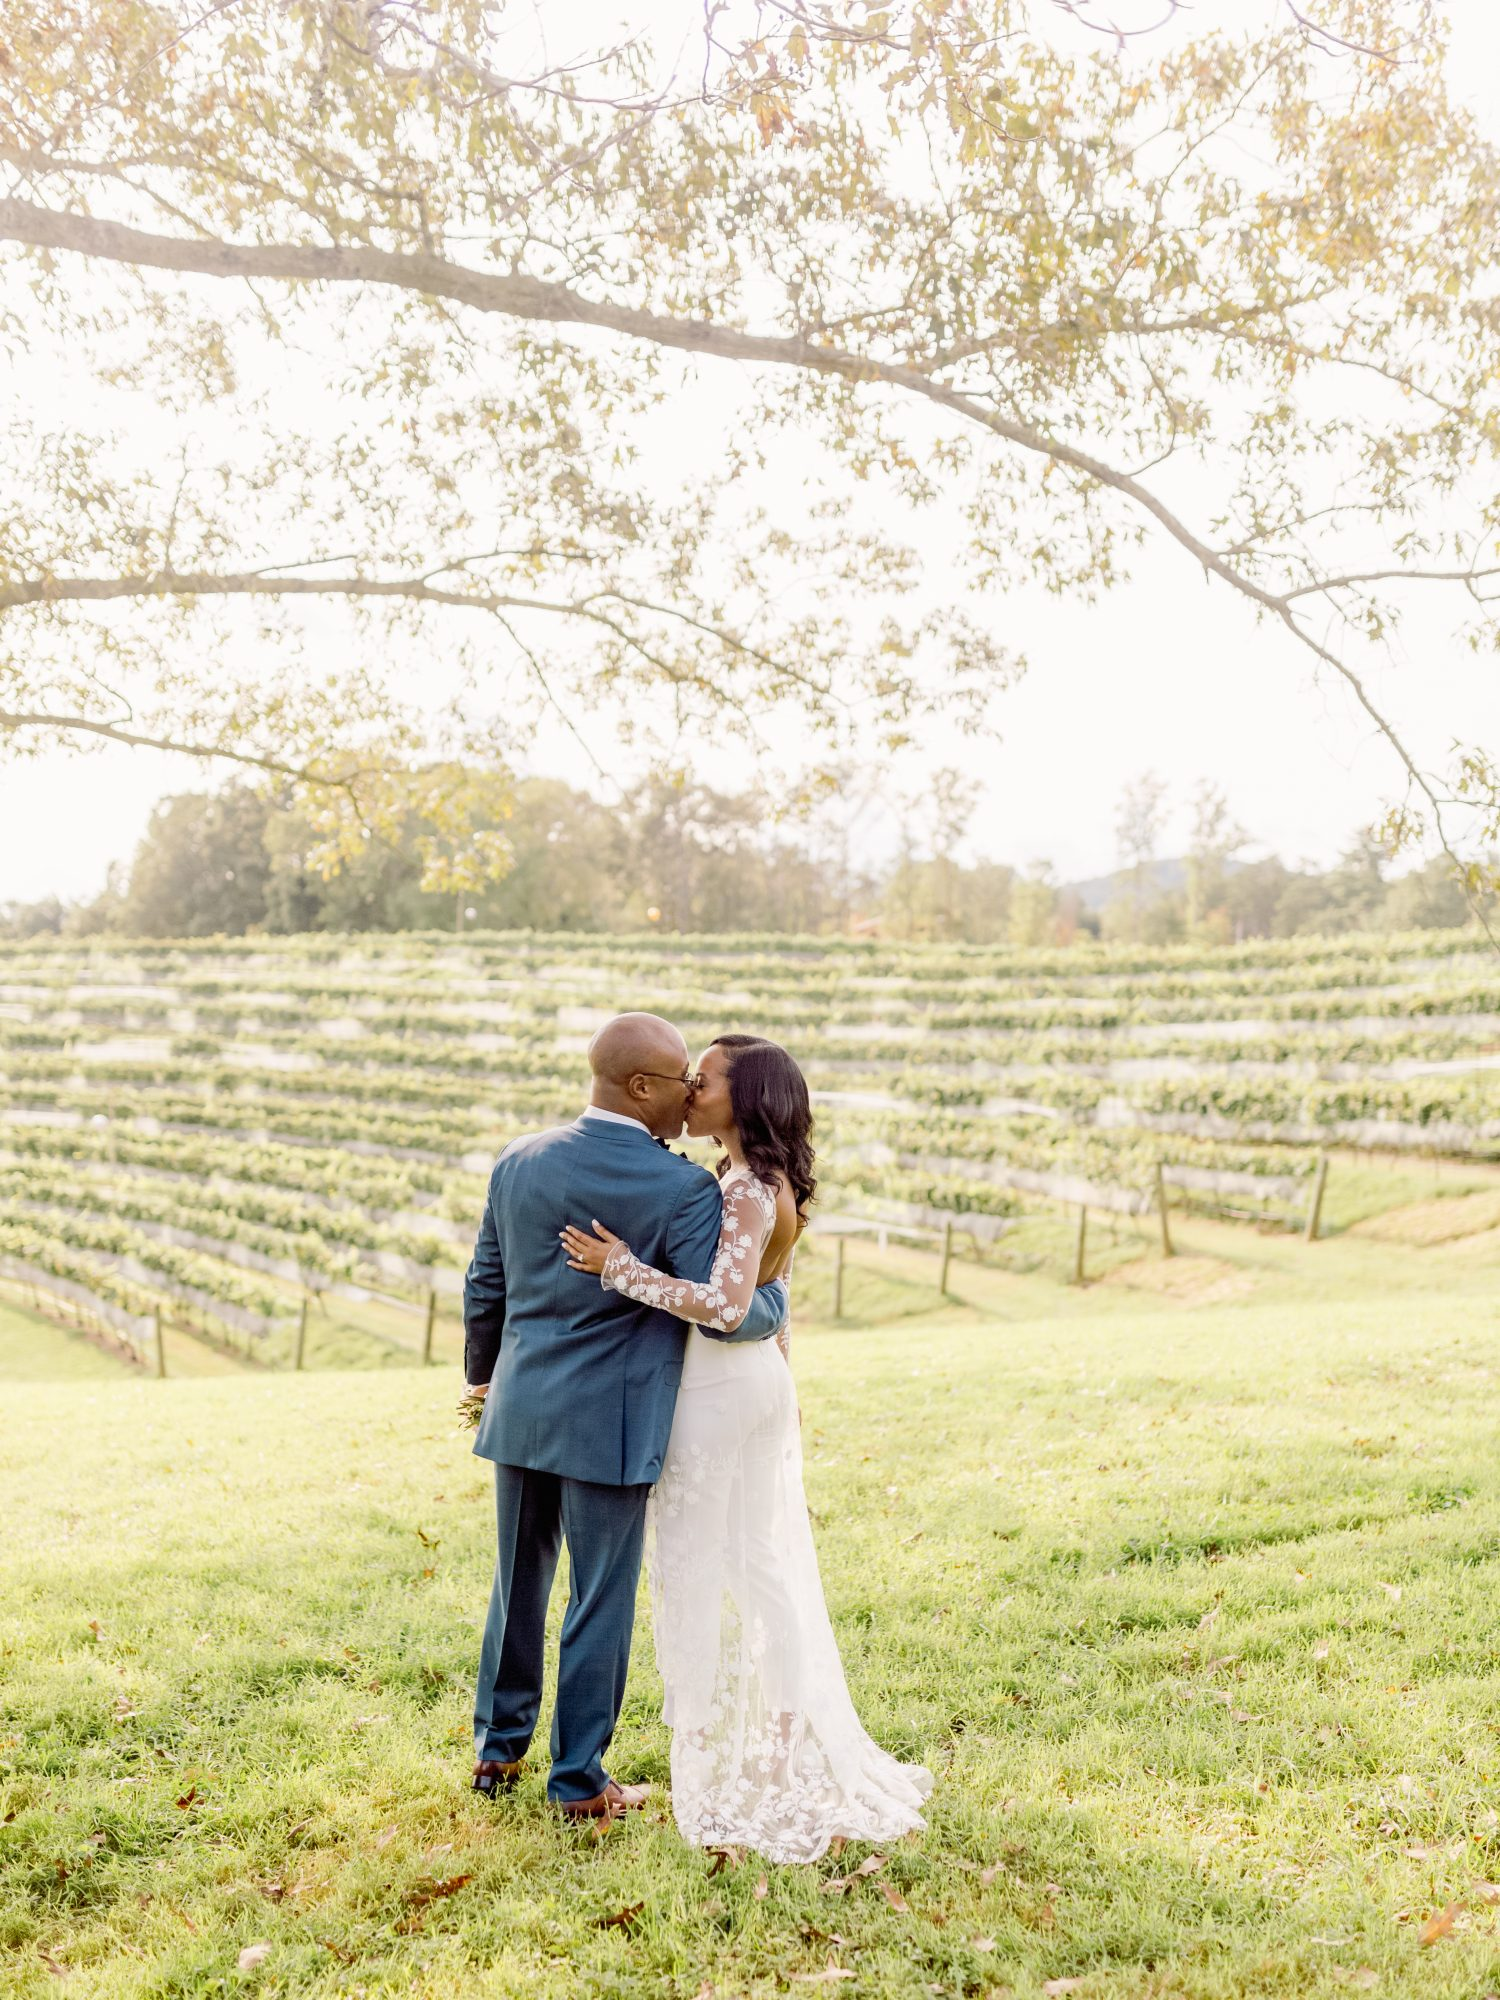 cayla david wedding couple kiss and embrace in front of a vineyard backdrop